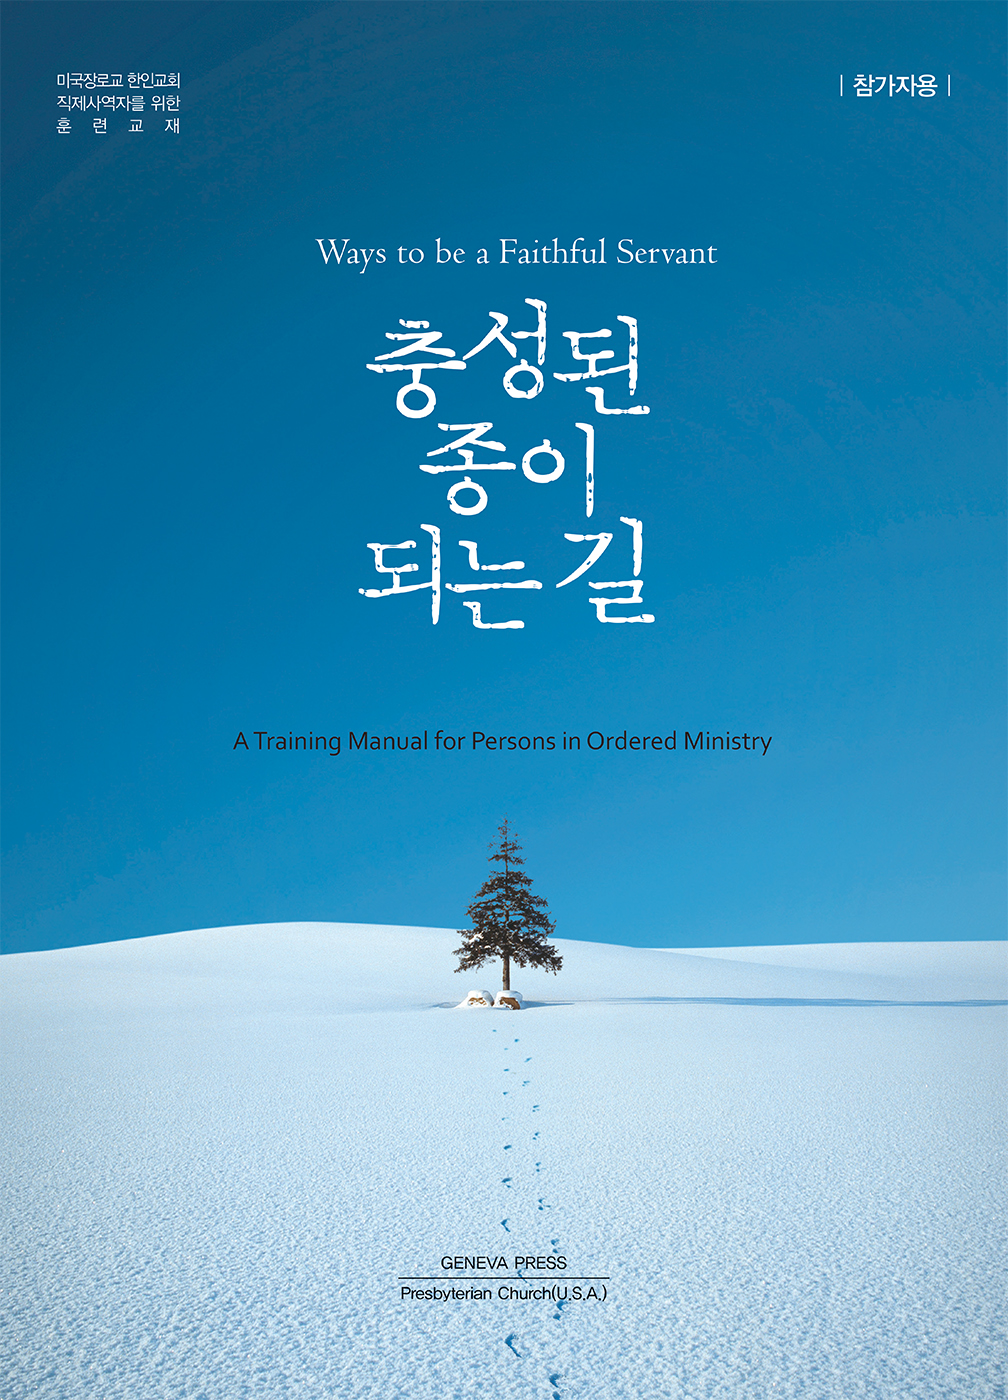 Ways To Be a Faithful Servant, Participant's Book (Revised), Korean